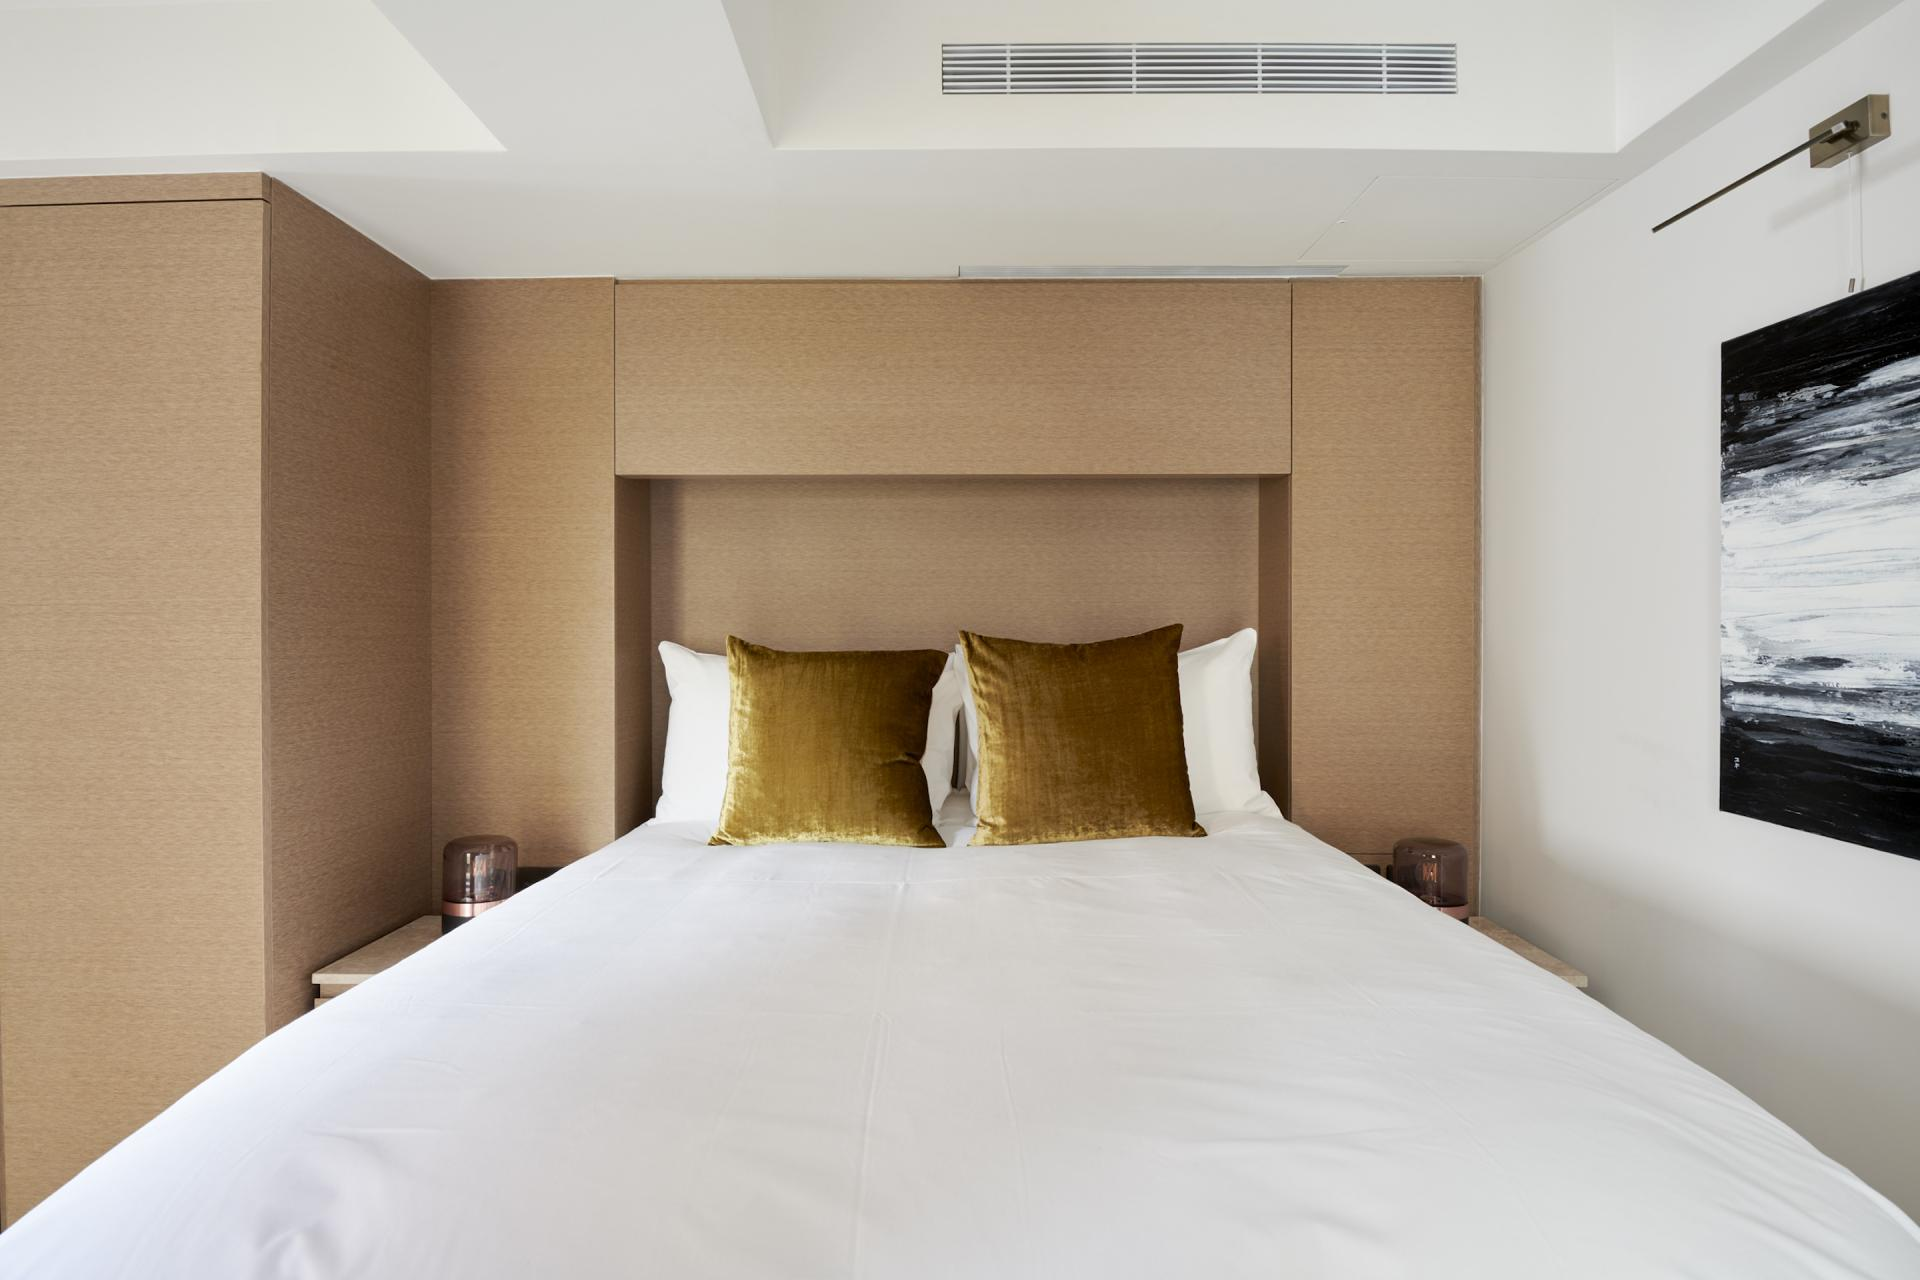 Bedding at Maddox Suites, Carnaby, London - Citybase Apartments